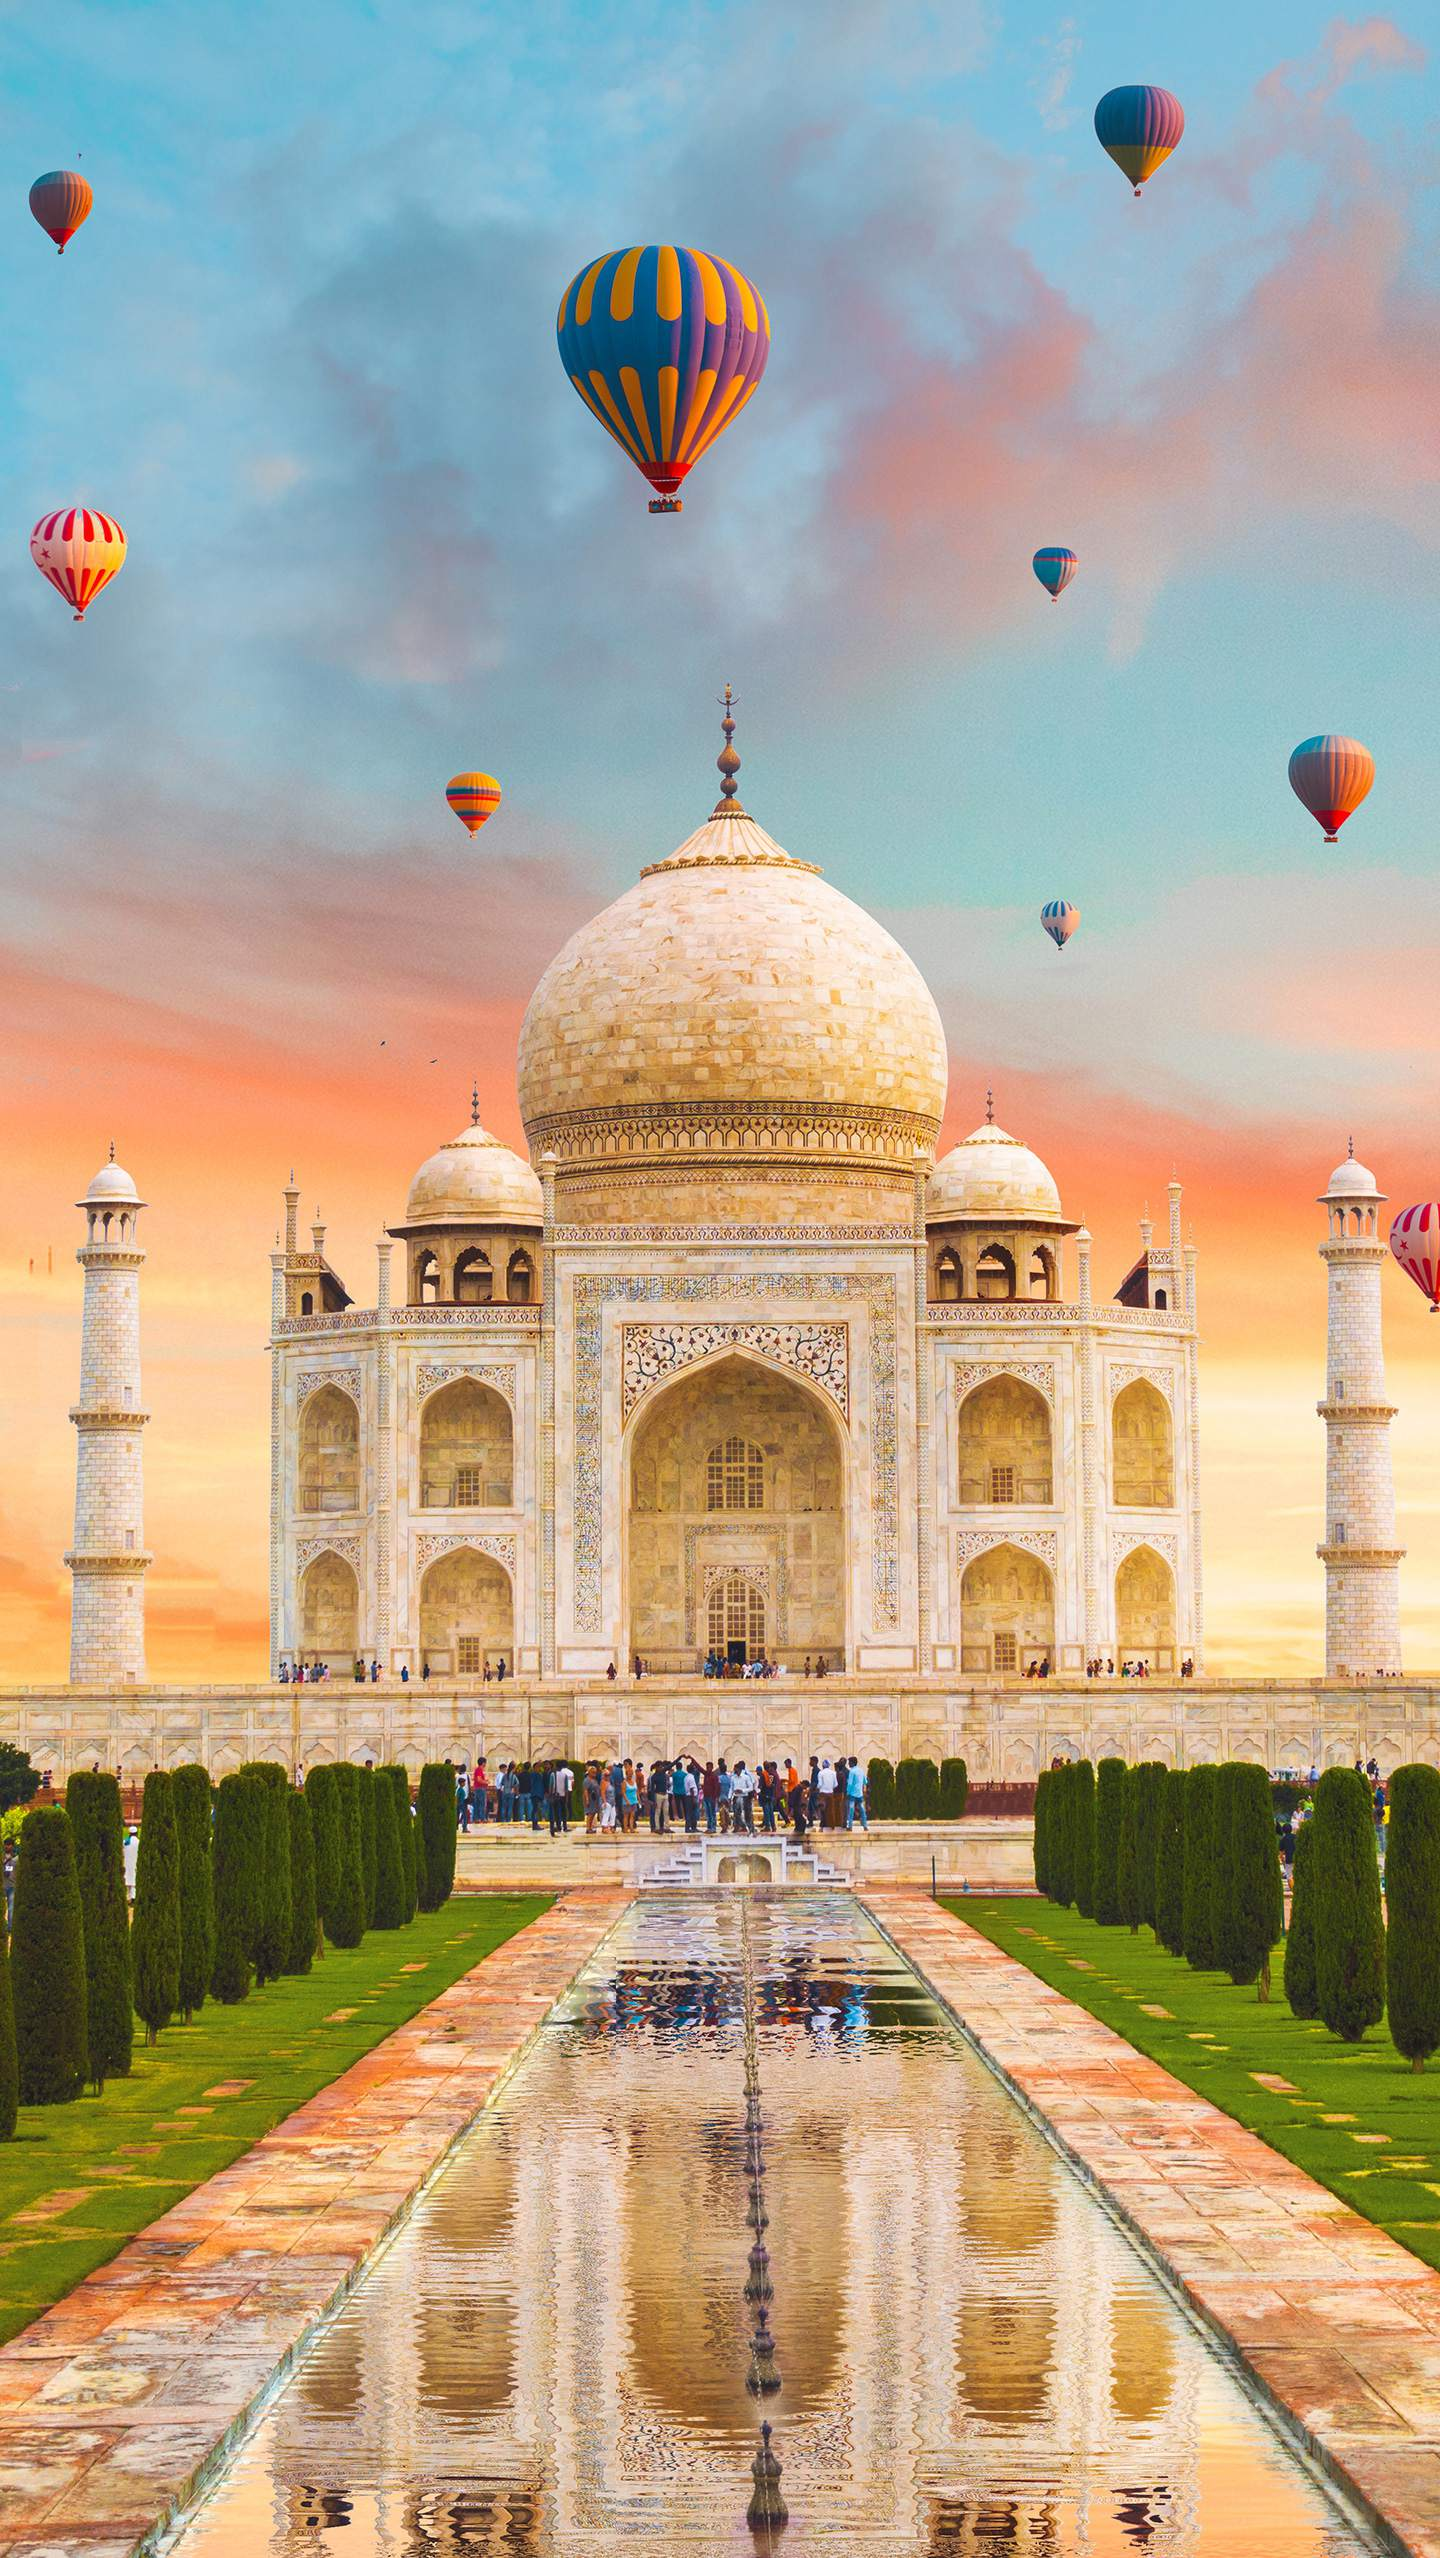 Cute Phone Wallpapers With Quotes Taj Mahal Iphone Wallpaper Iphone Wallpapers